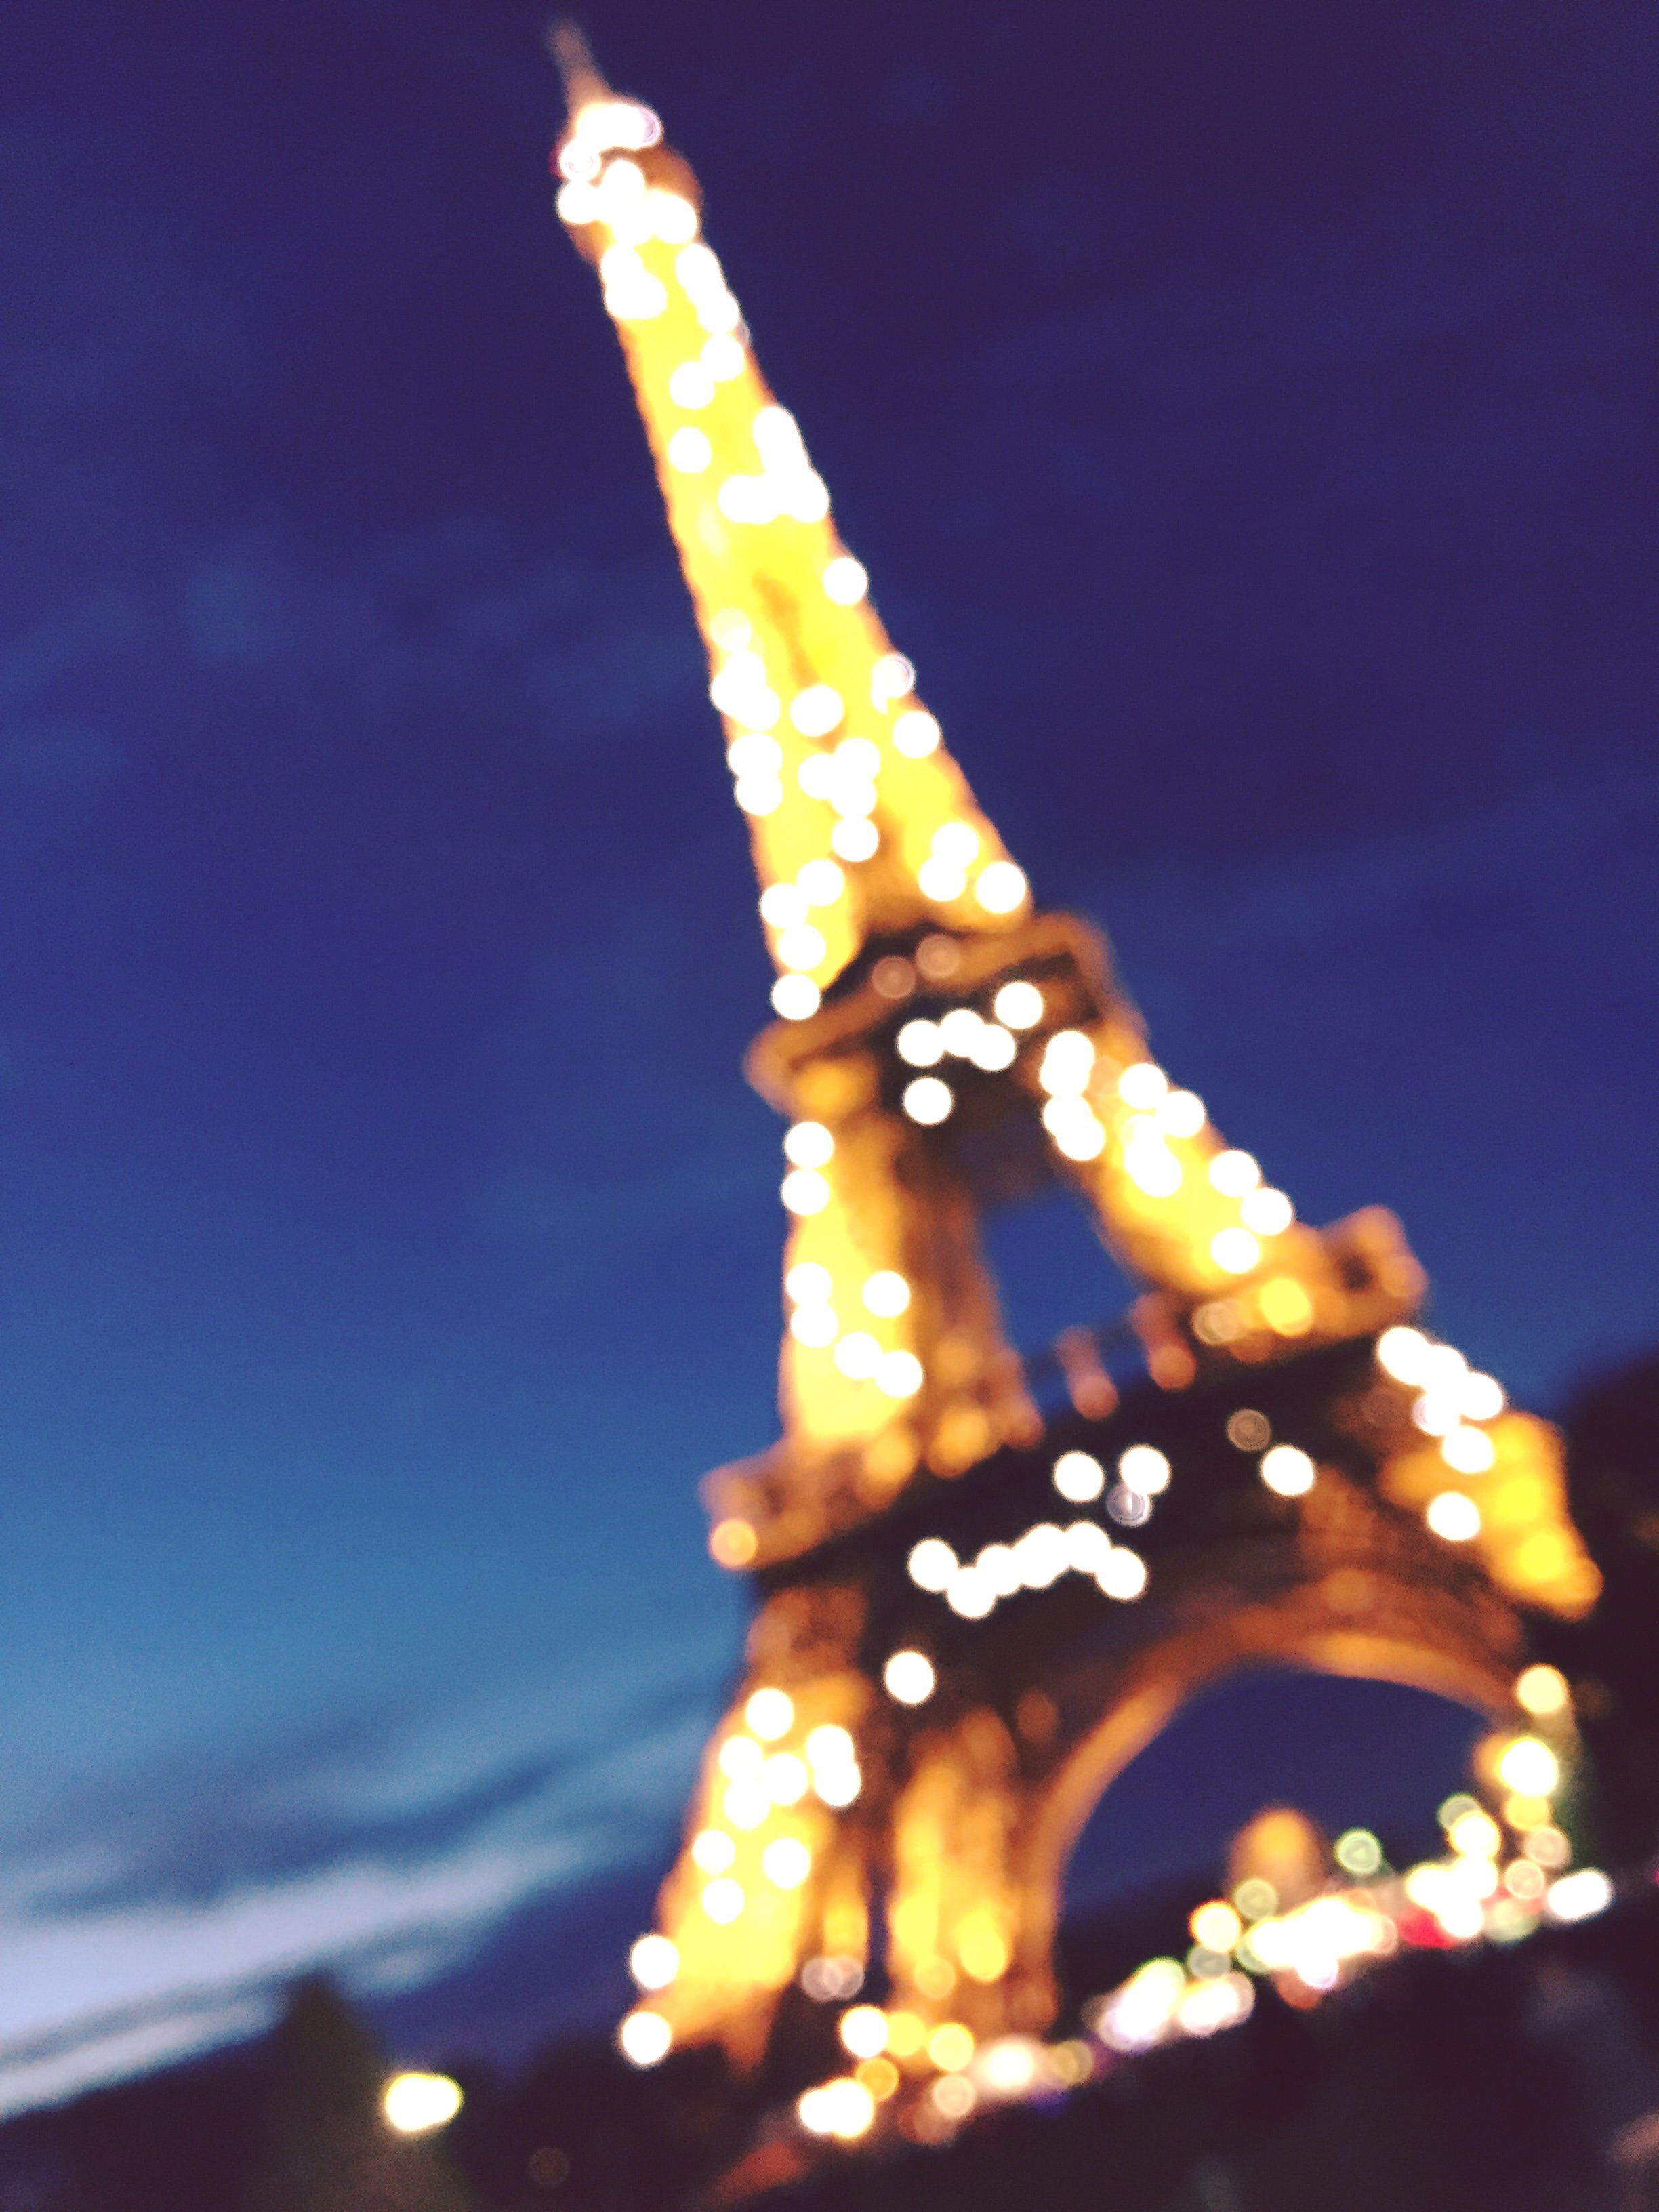 Every night beginning at 6pm, the Eiffel Tower's lights sparkle for 5 minutes every hour. It's the most magical sight!